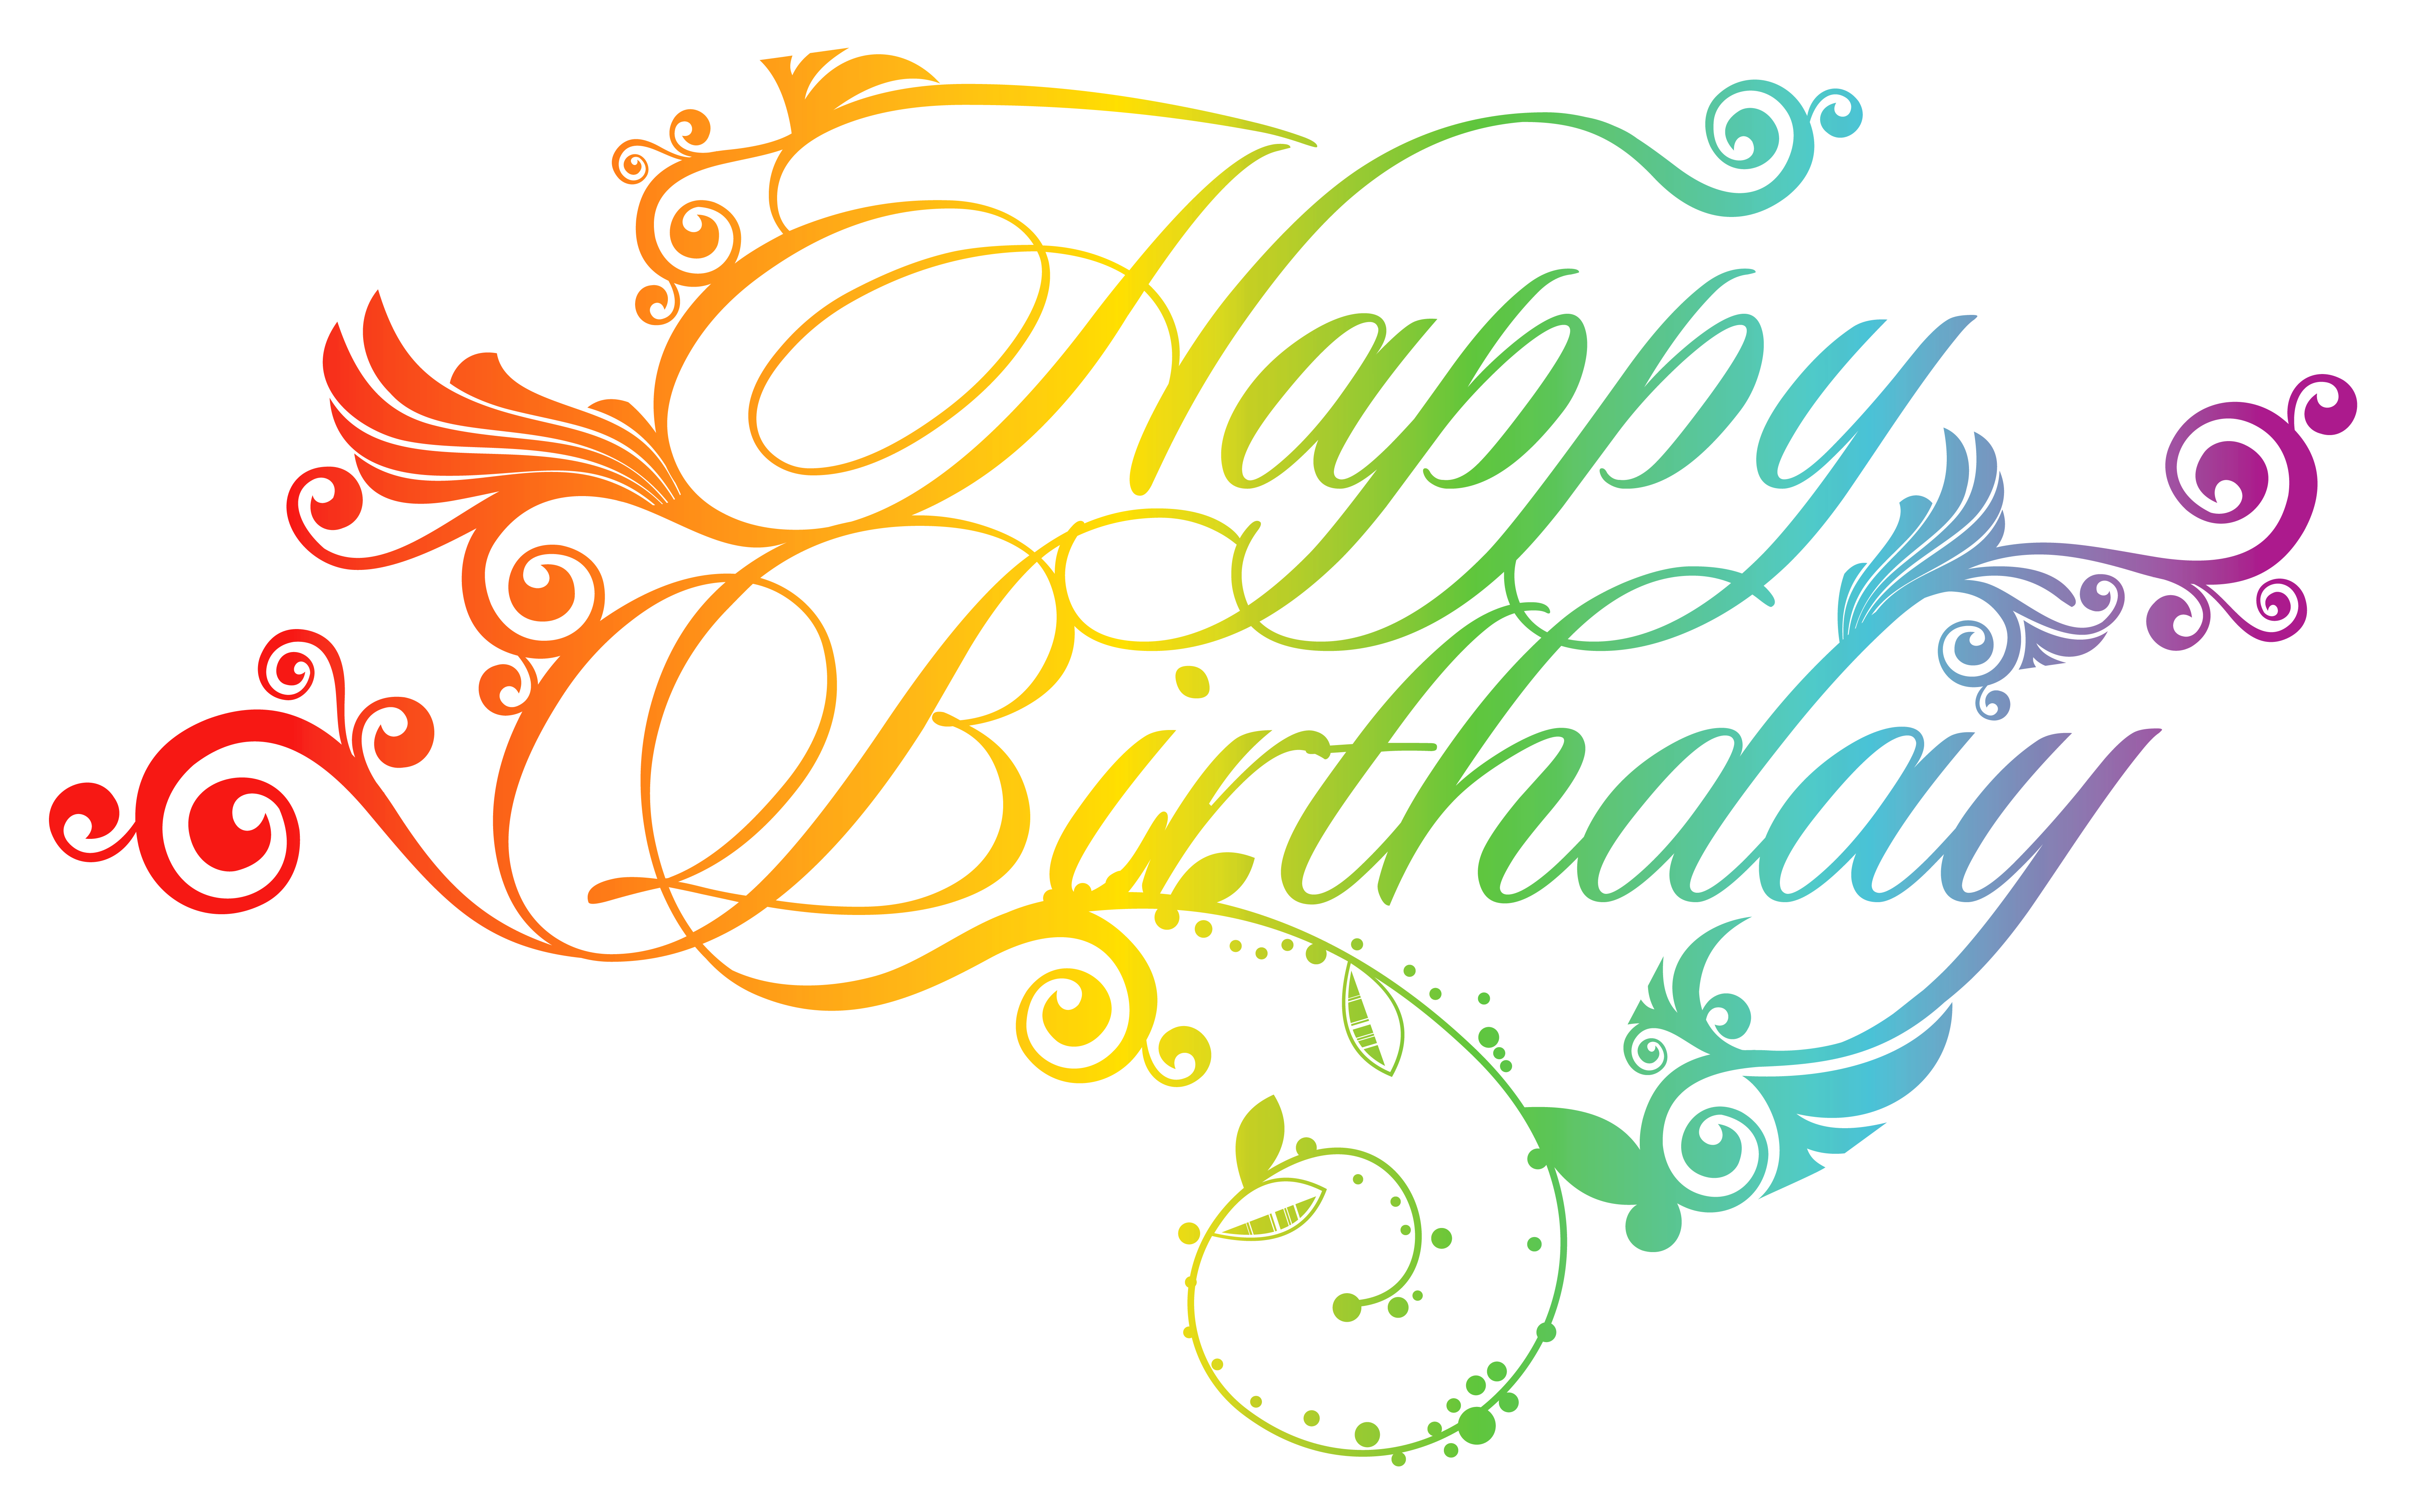 Colorful happy png picture. June clipart april birthday